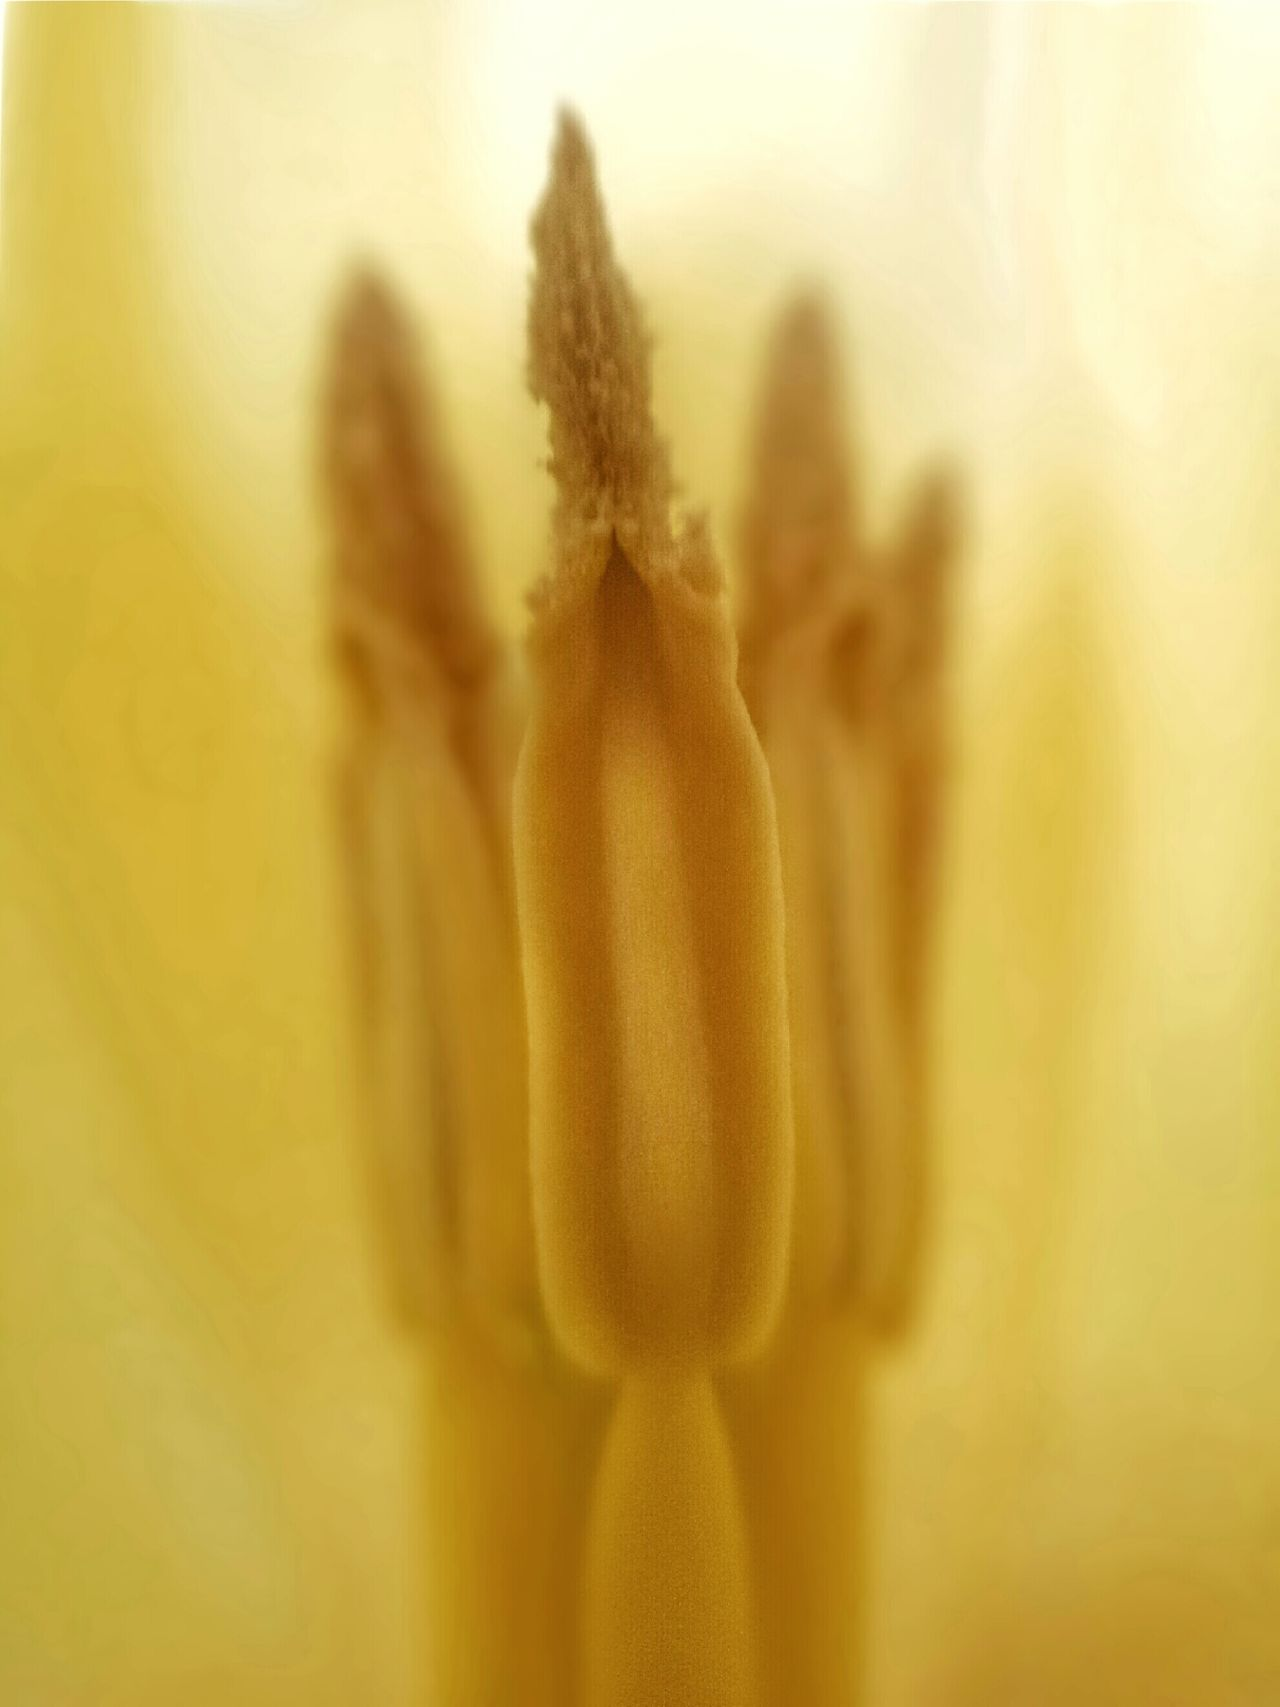 Phone Photography With Clip-on Macro Lens Phone Macro Samsung Galaxy S4 Phone Yelow On Yellow Yellow Flower Yellow Tulip Phone Samsung Close-up Of A Yellow Tulip Macro Of A Yellow Tulip PhonePhotography Flower Collection Macro_perfection Nature_collection Phone Photography Flower Naturelovers Flowerporn Nature Lover Macro Photography Nature_ Collection  Macro Beauty Naturelover 50shades Of Yellow Yellow Samsung Galaxy S4 Macroclique